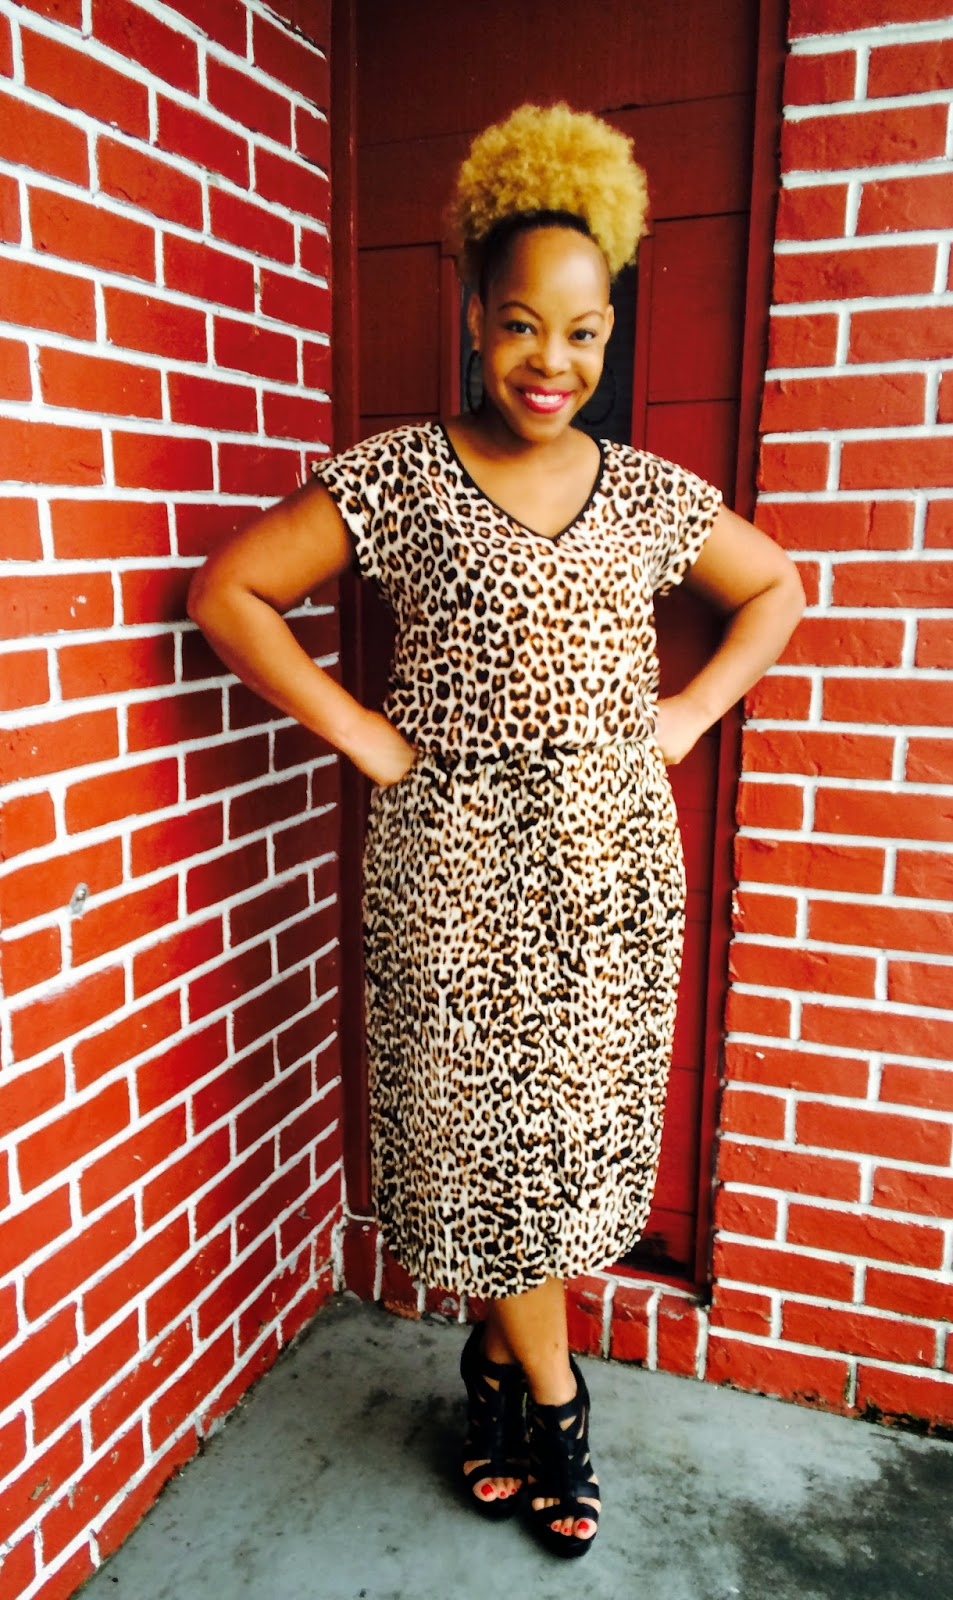 Animal Prints-Fashion-Style-Trends-Clothing